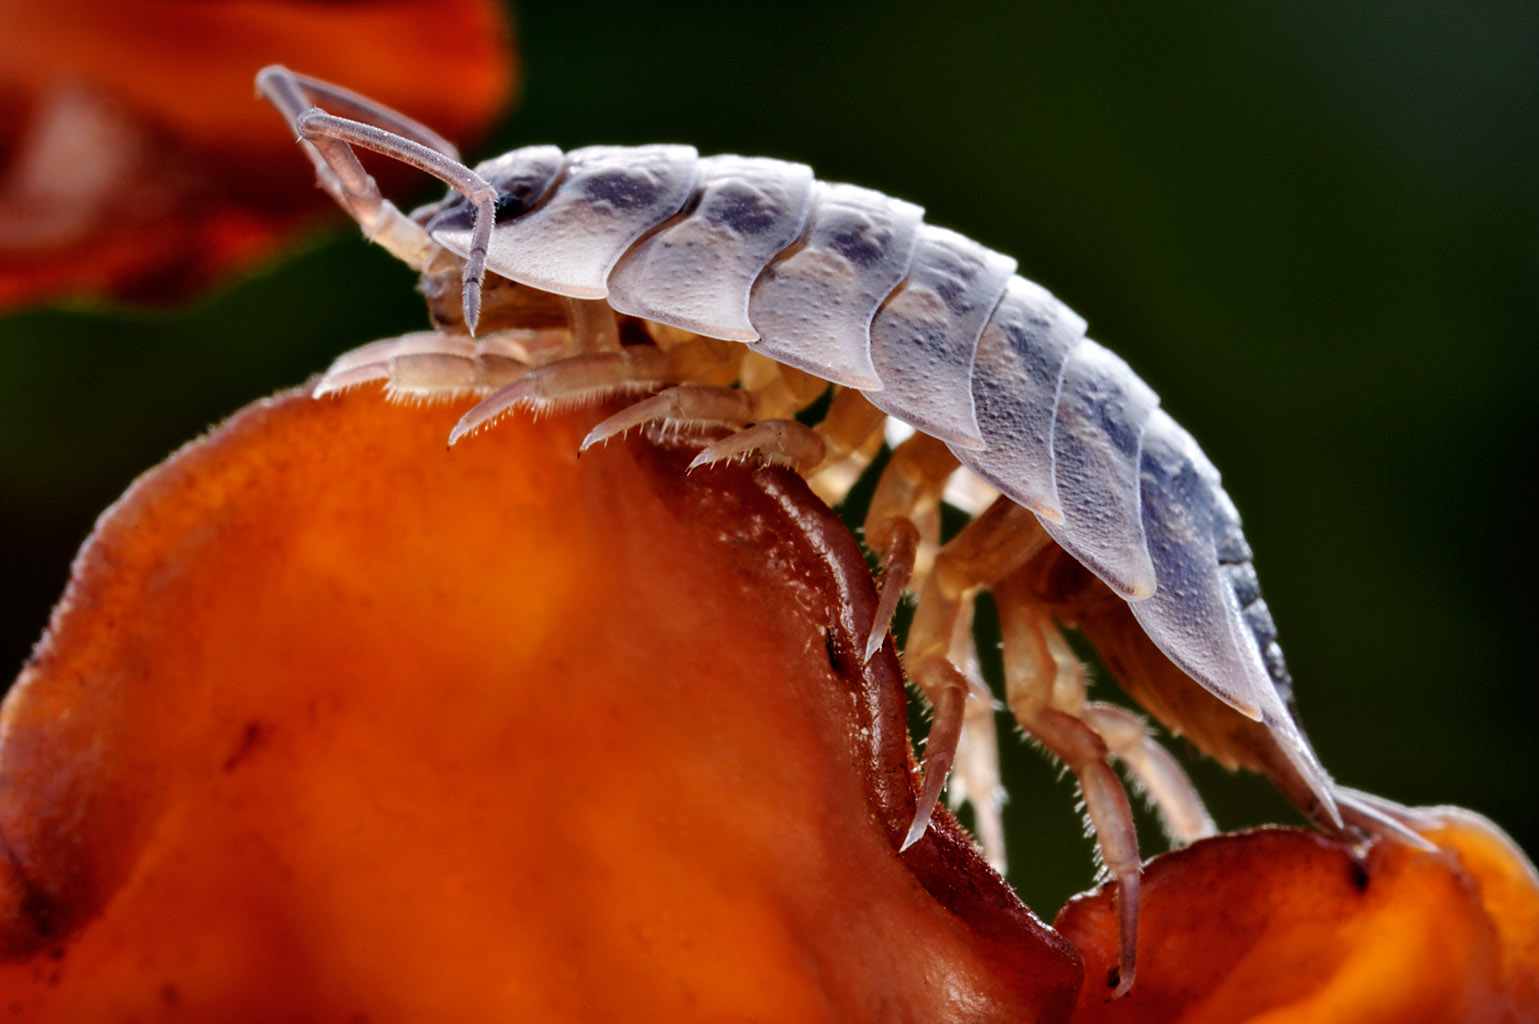 woodlouse 0003  PORTFOLIO GALLERY.jpg